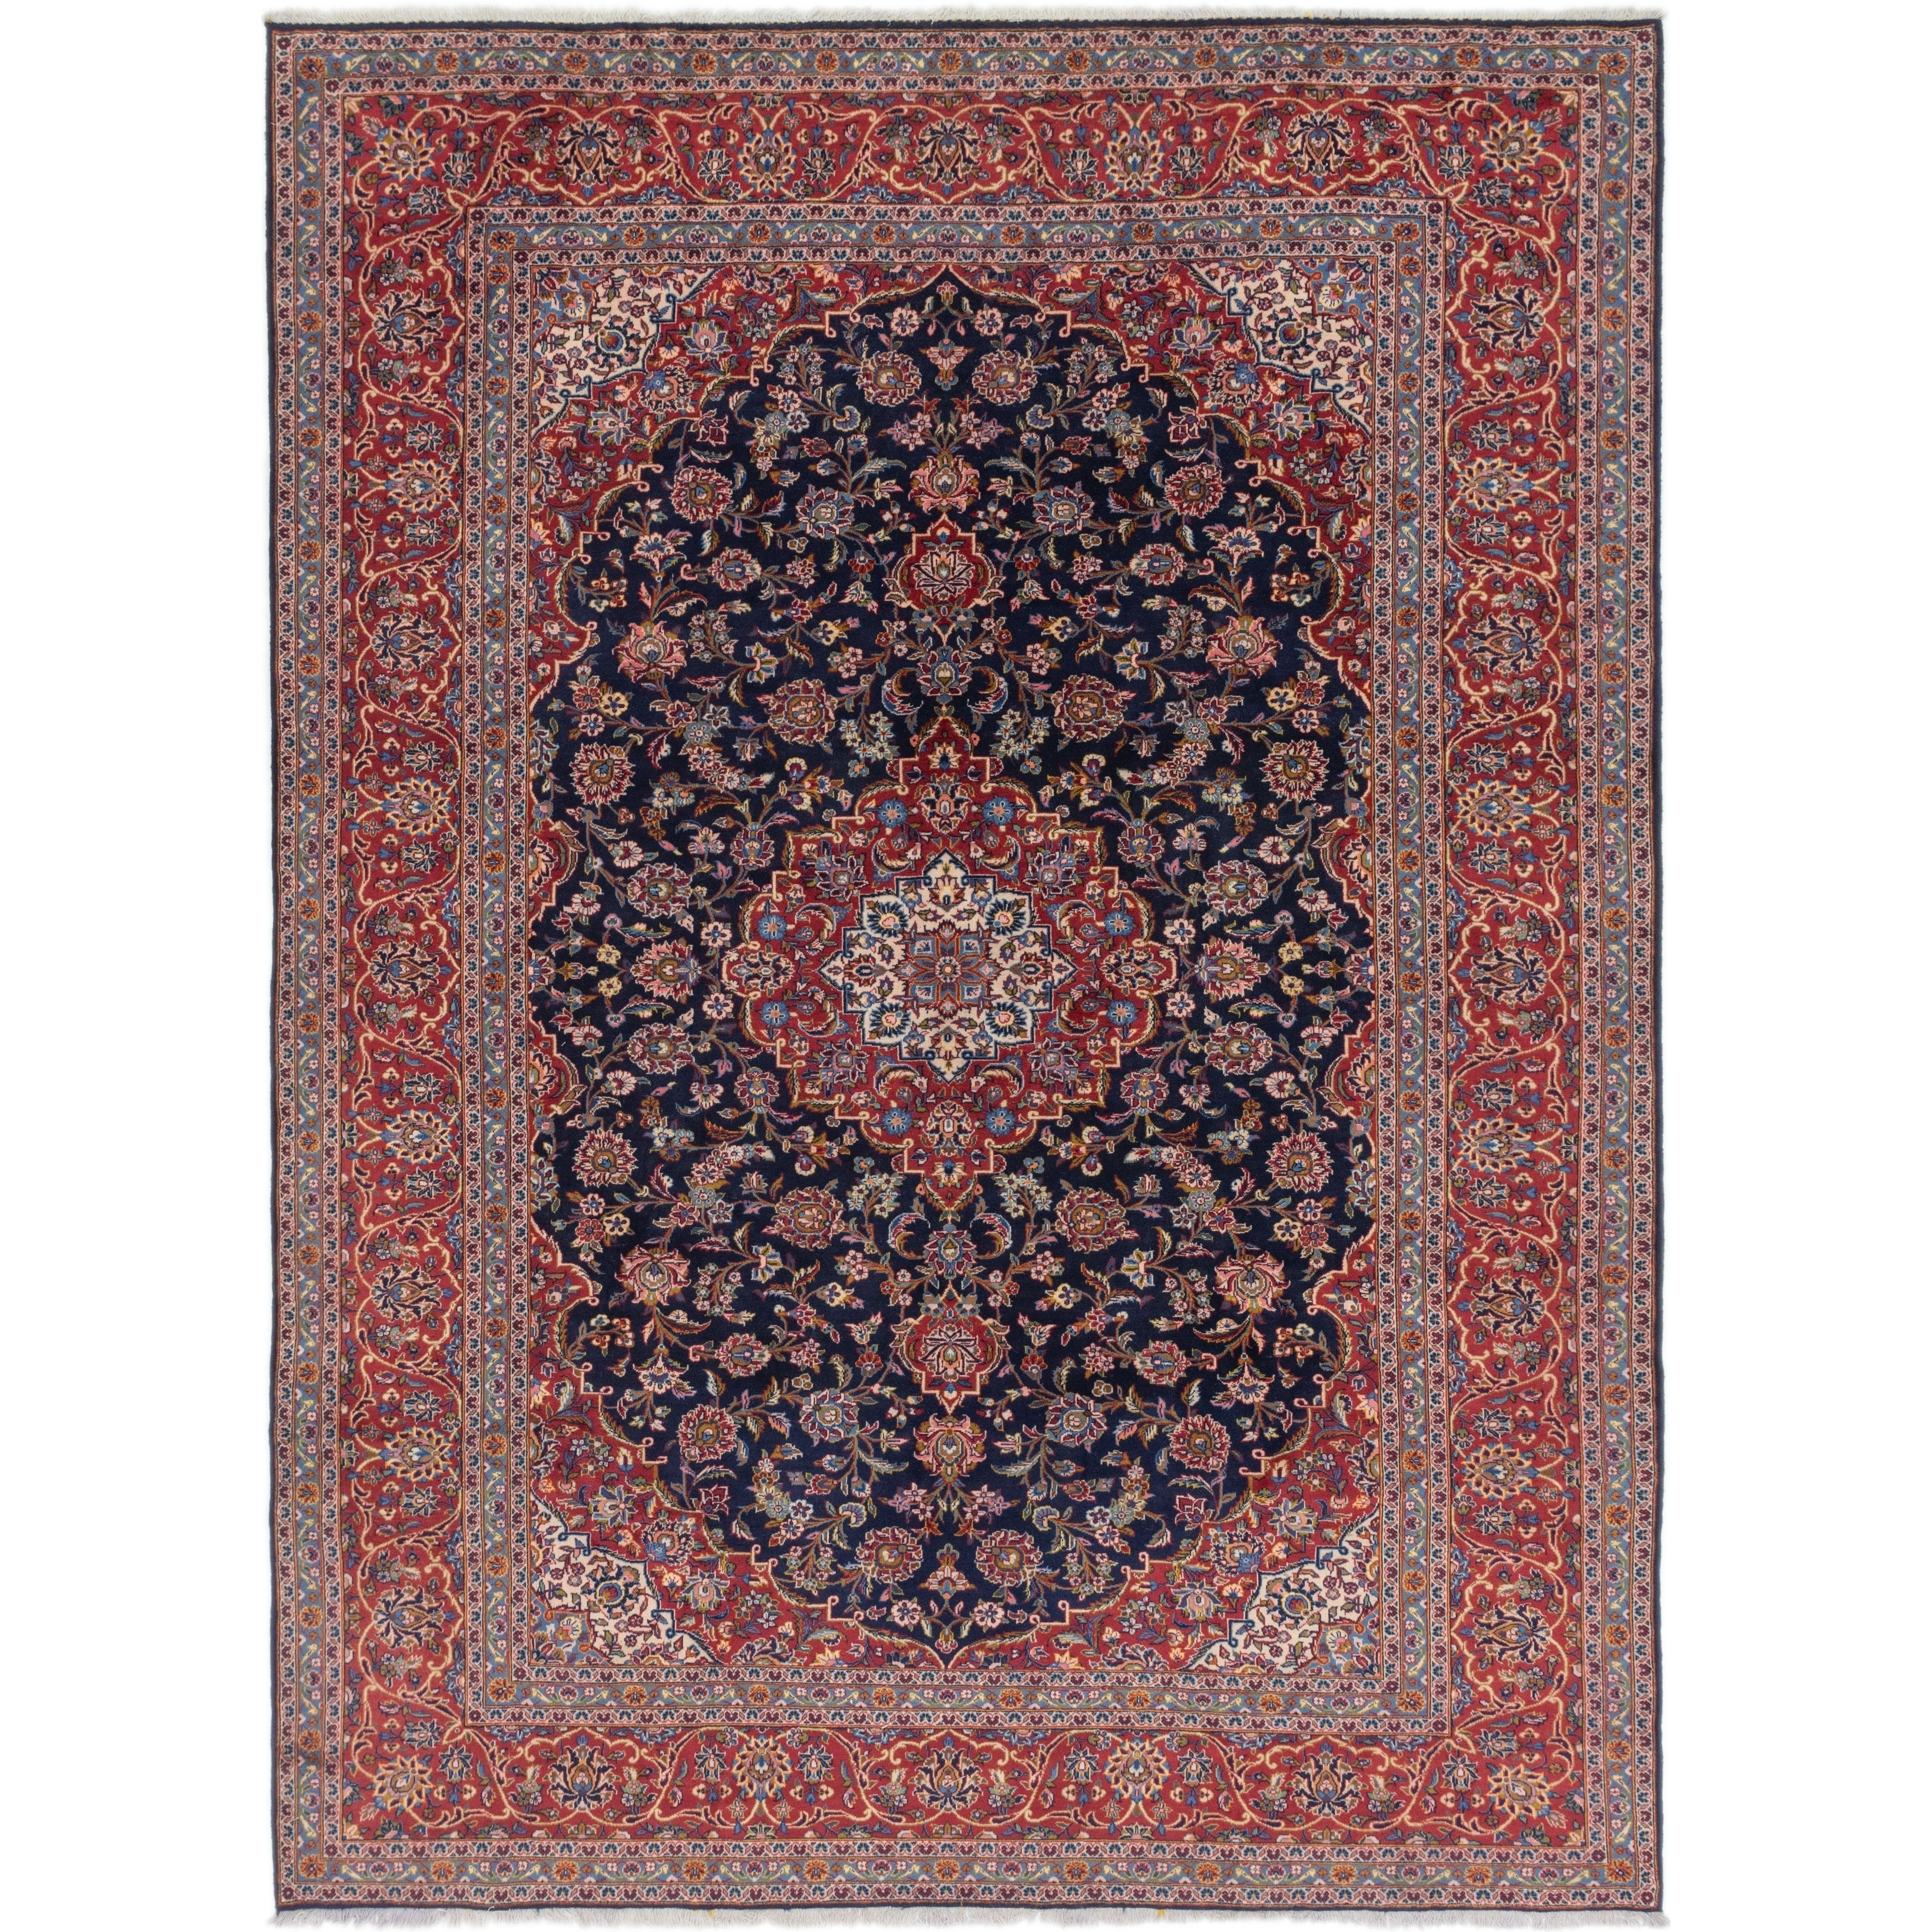 Hand Knotted Kashan Wool Area Rug - 10 x 13 3 (Navy blue - 10 x 13 3)